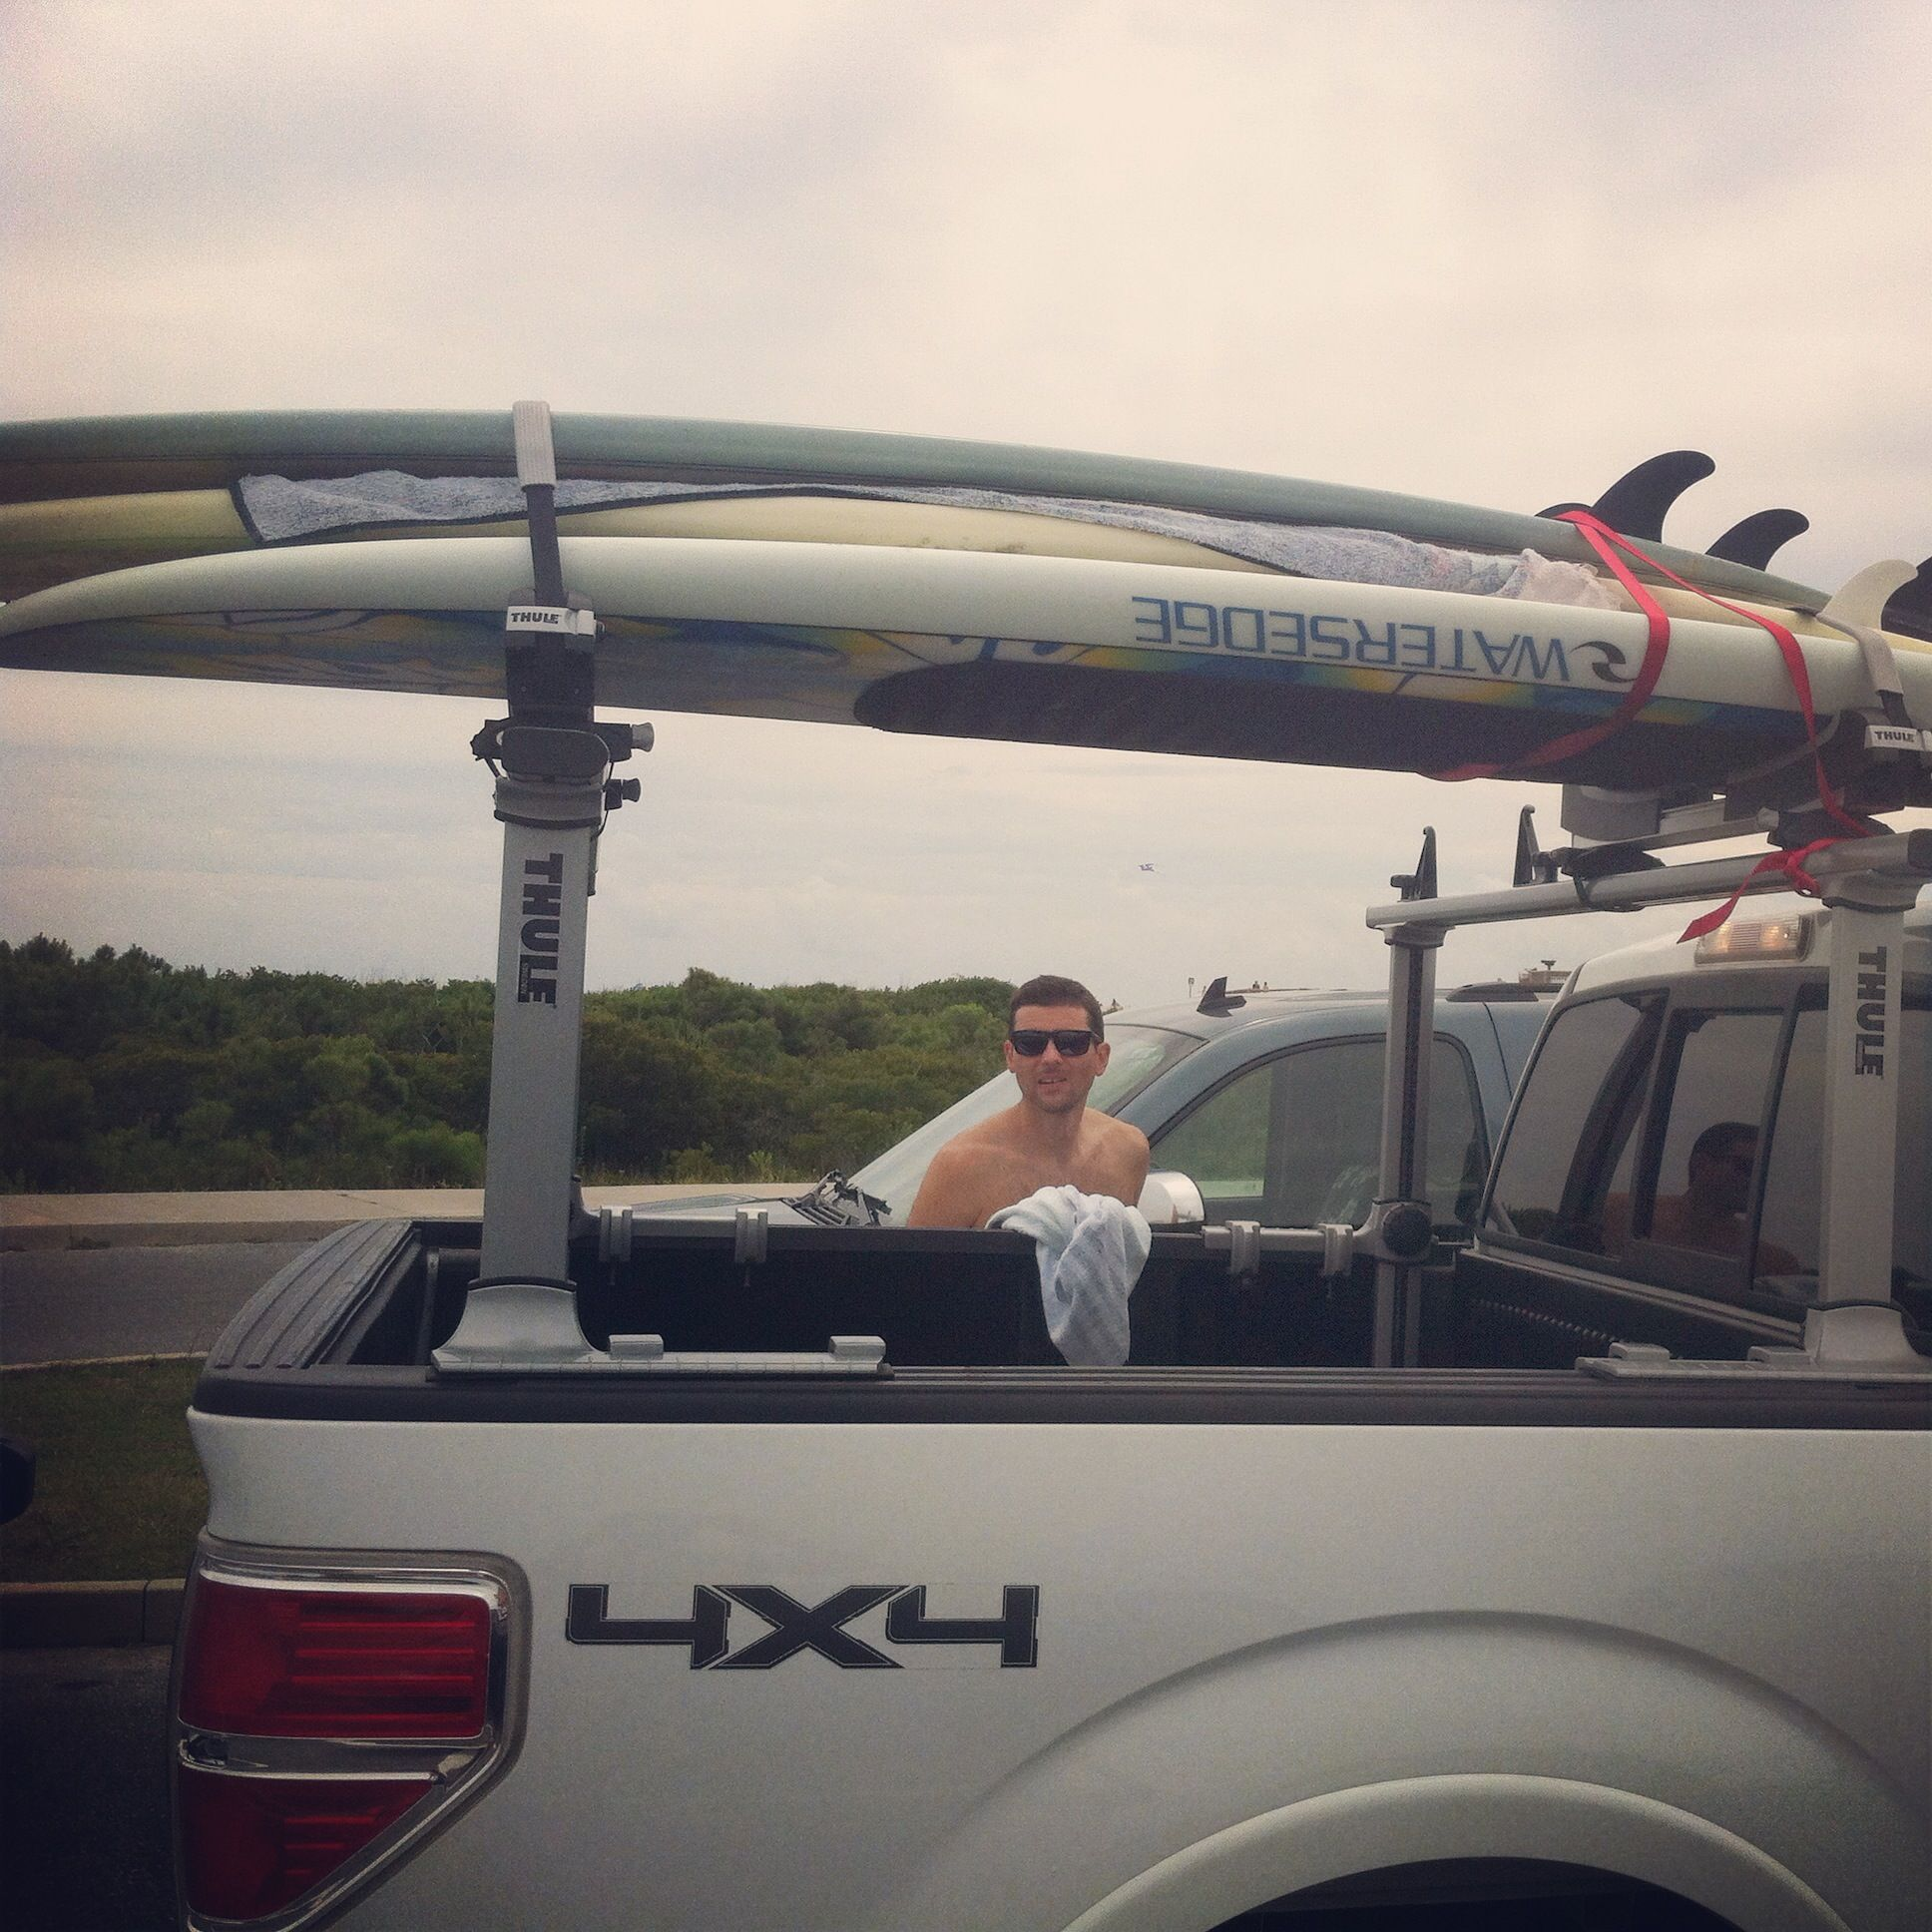 Thule Paddleboard And Surfboard Truck Rack Suptransportation Surfboardtransportation Storeyourboard Kayak Rack Surfing Paddleboard Rack